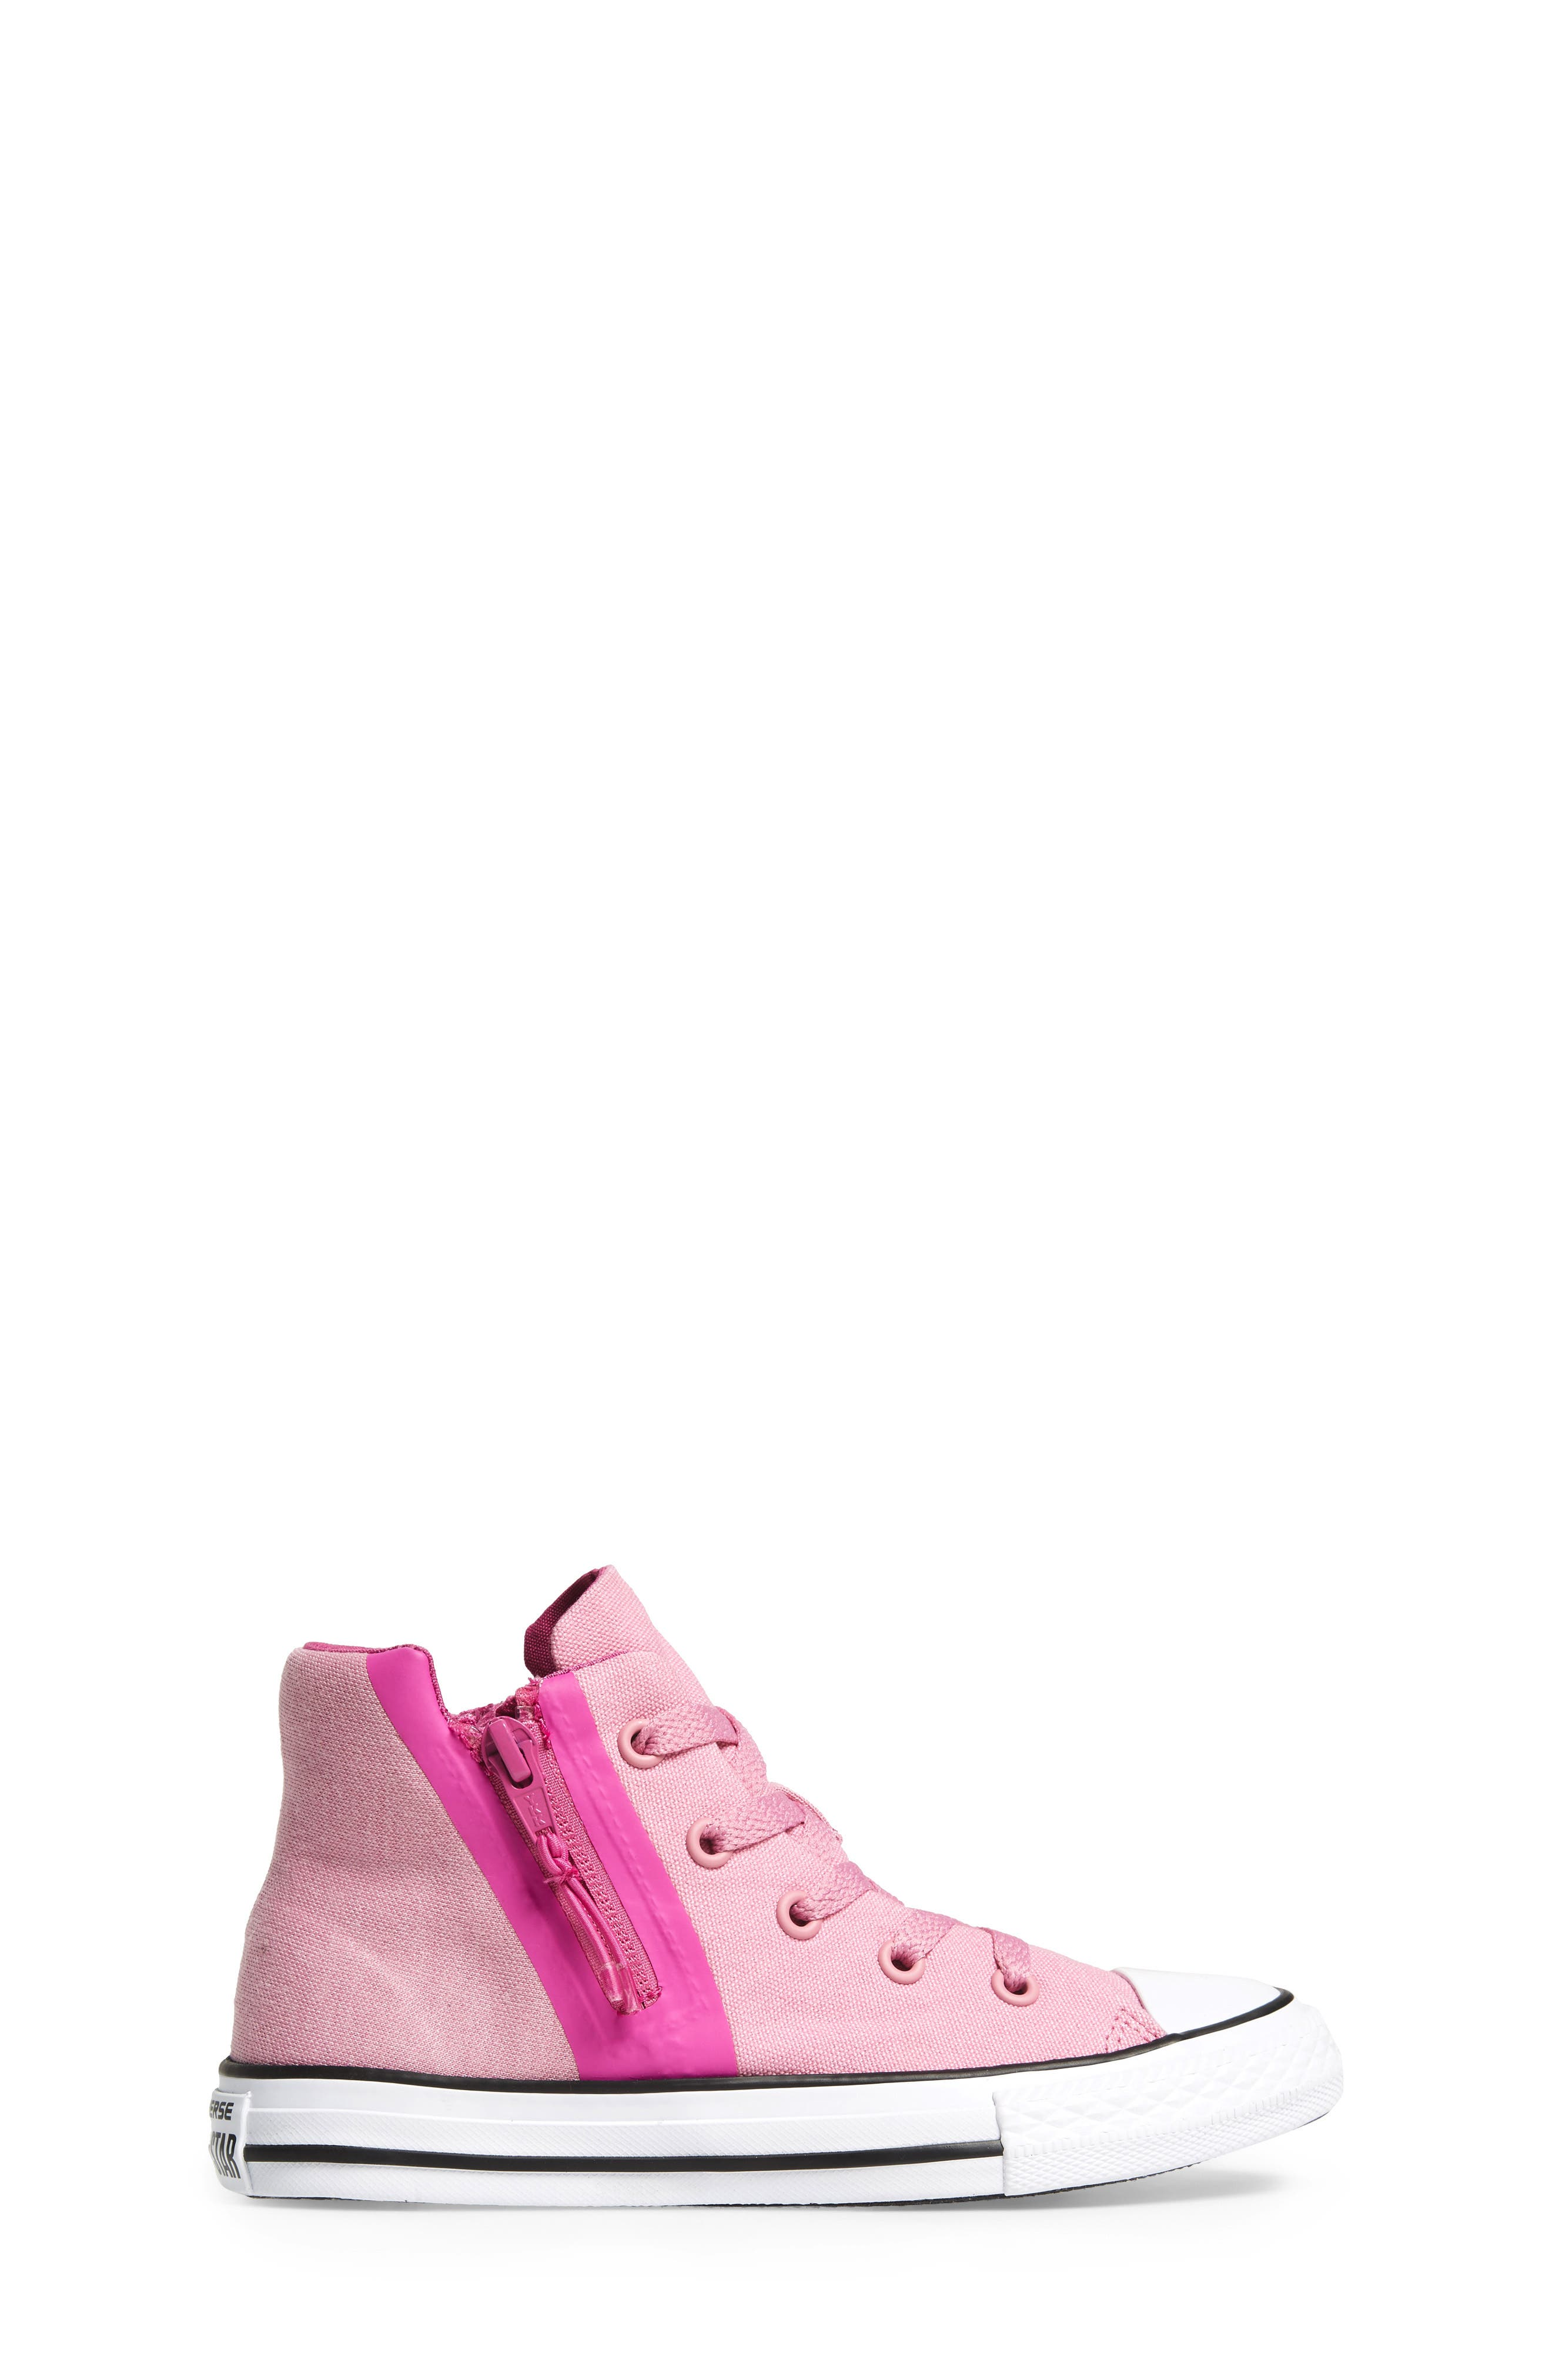 Chuck Taylor<sup>®</sup> All Star<sup>®</sup> Sport Zip High Top Sneaker,                             Alternate thumbnail 3, color,